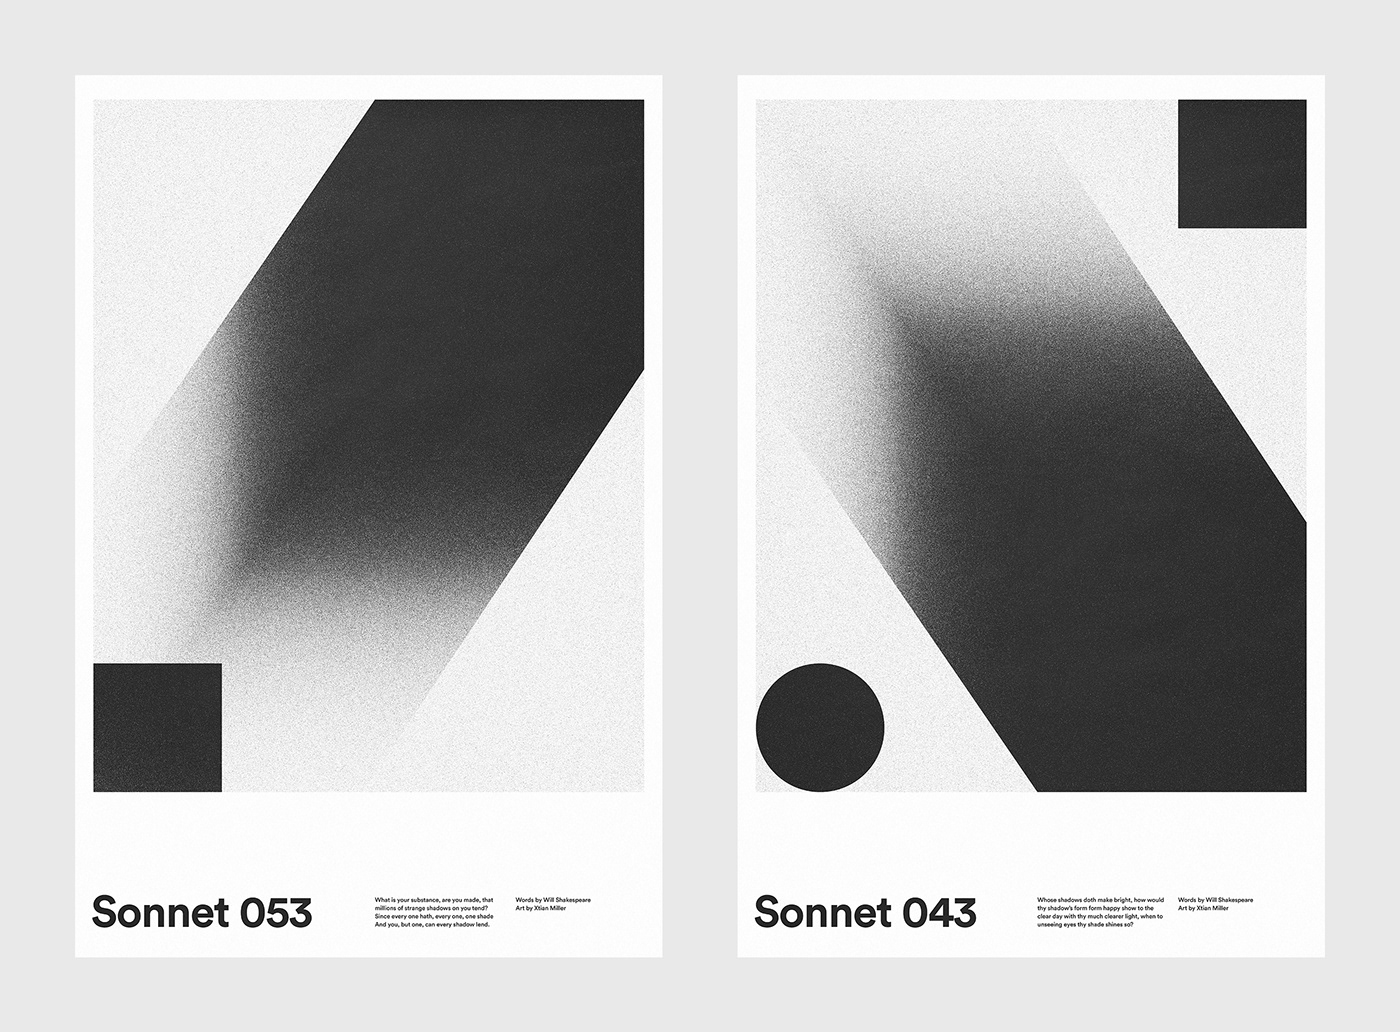 Sonnet 053 and 043